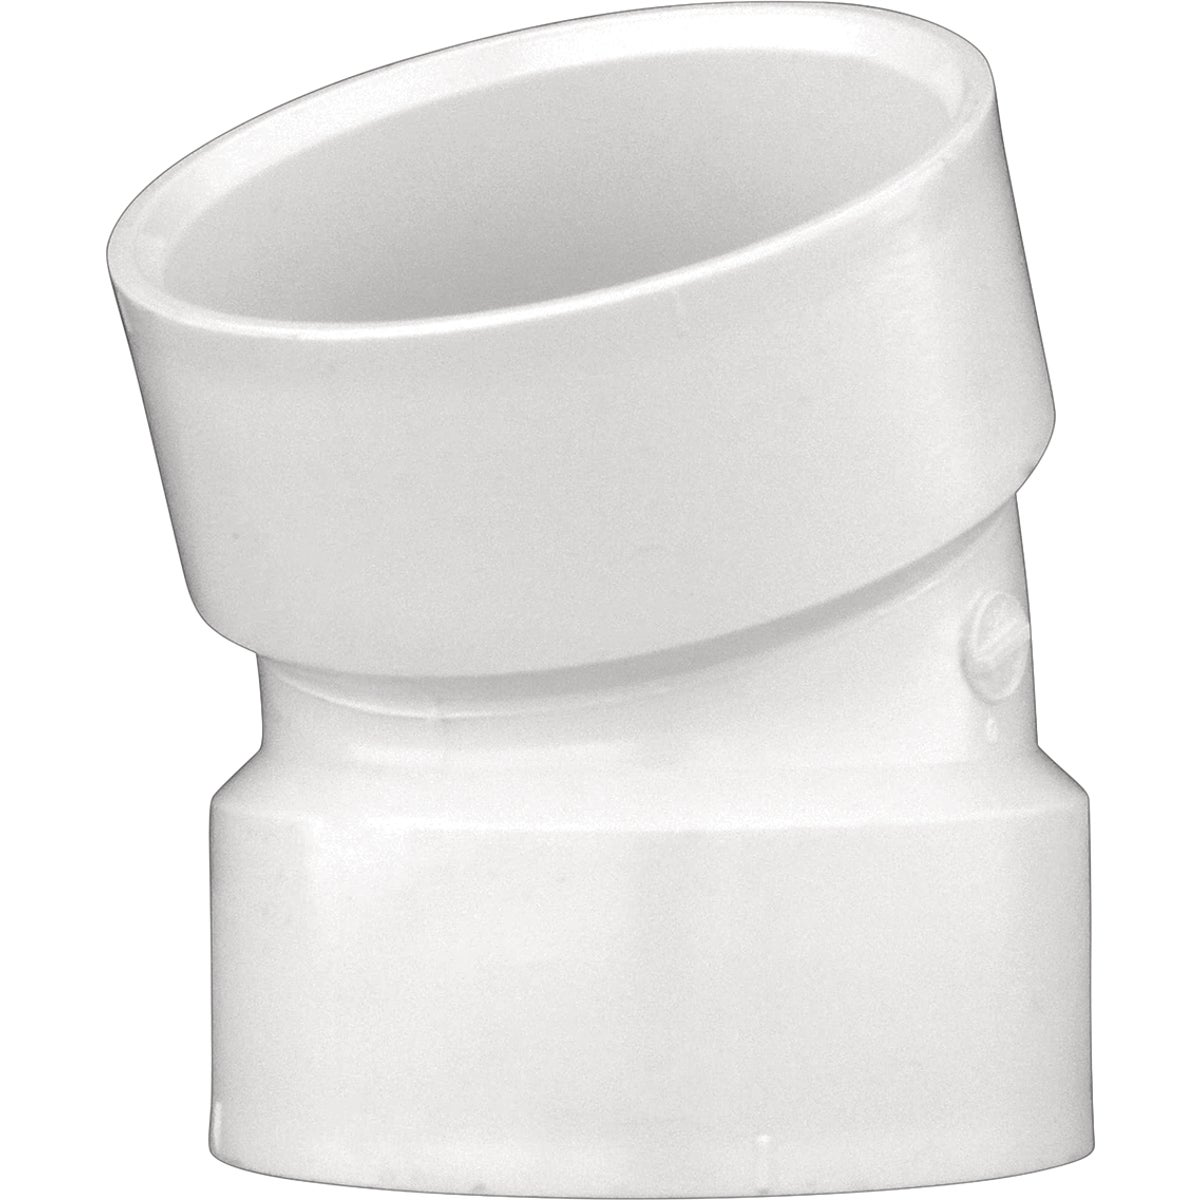 "6"" 22-1/2D DWV ELBOW - 70860 by Genova Inc  Pvc Dwv"